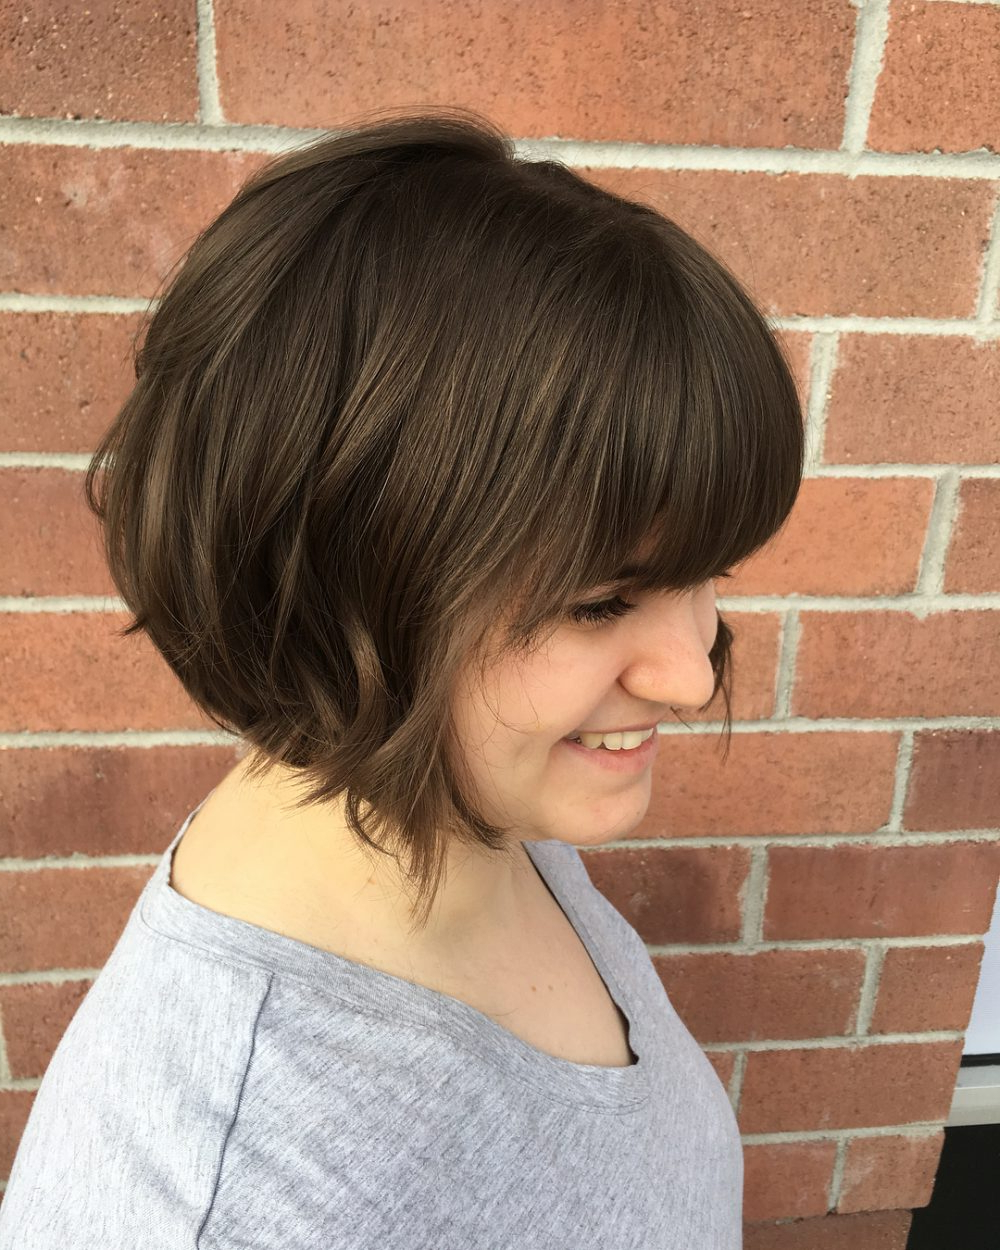 34 Greatest Short Haircuts And Hairstyles For Thick Hair For 2018 For Short And Classy Haircuts For Thick Hair (View 6 of 20)